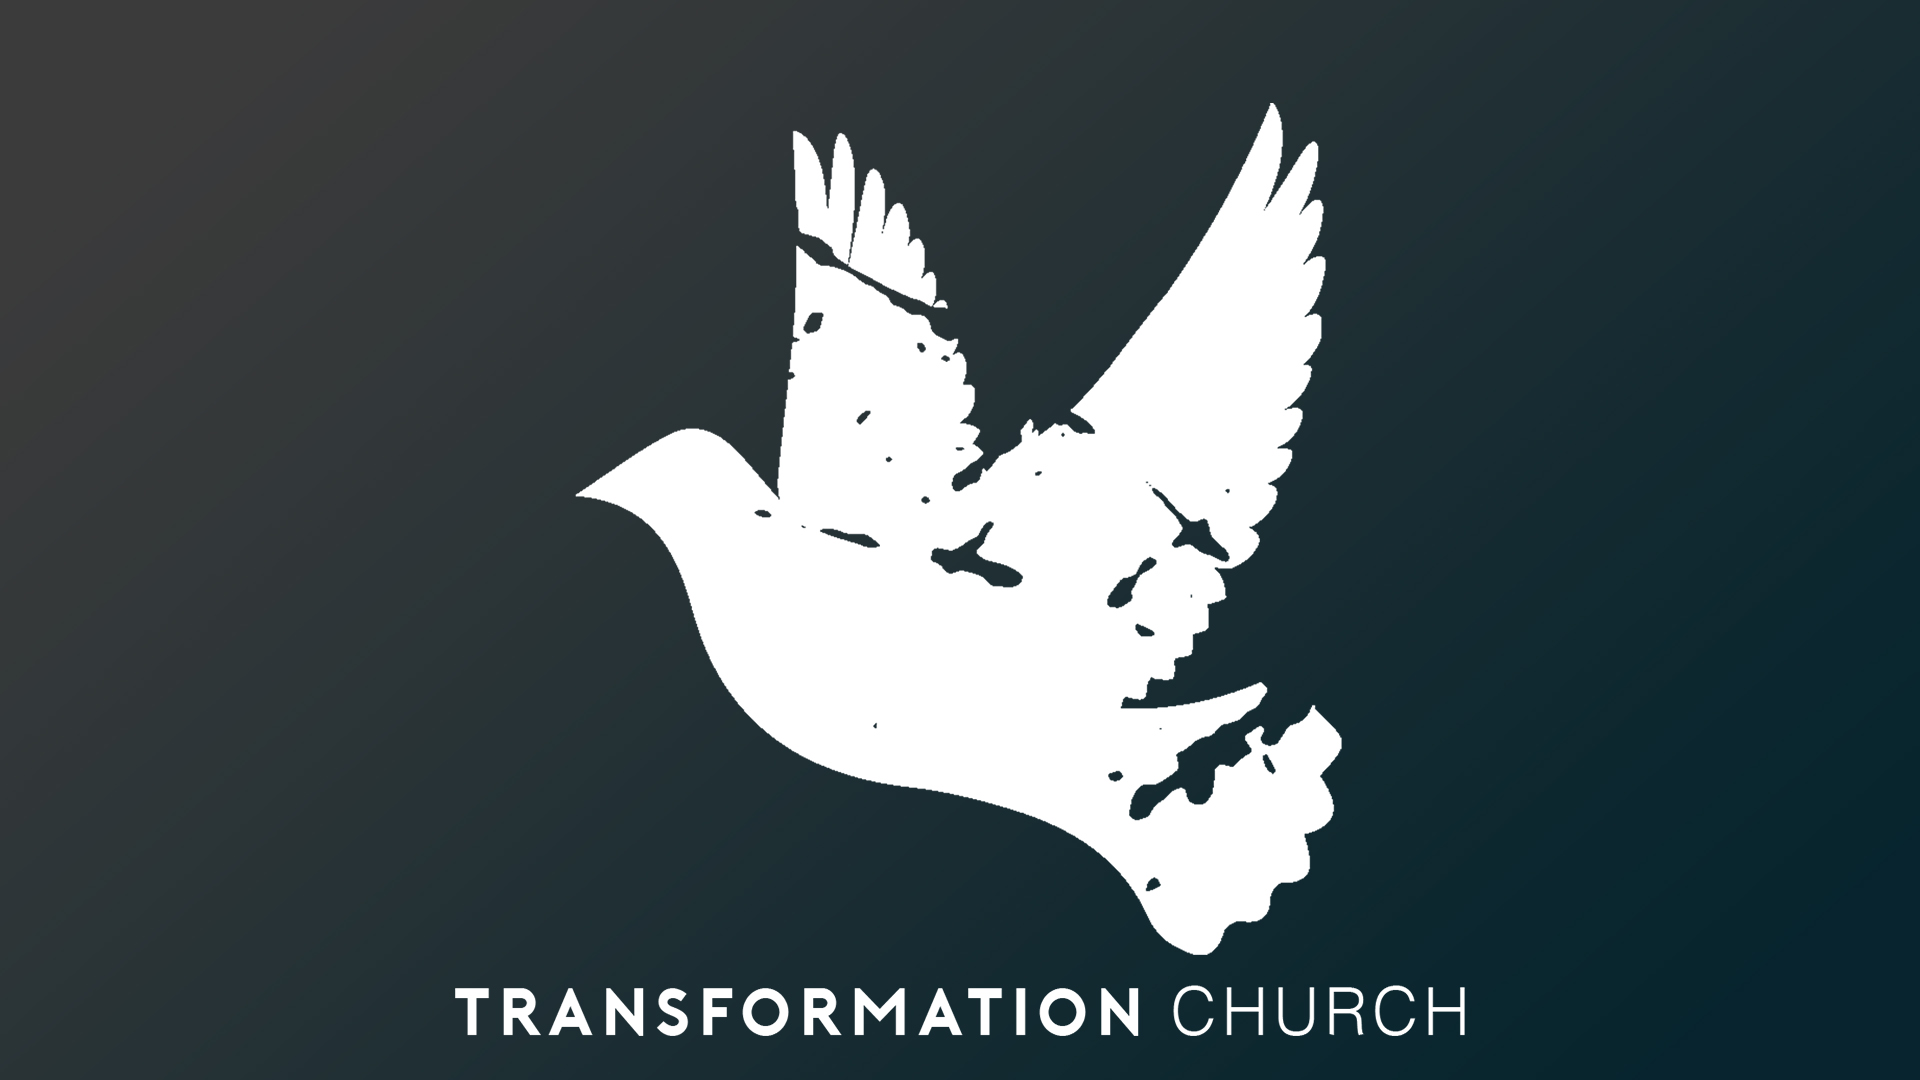 <h1>Transformation Church of Lubbock</h1>